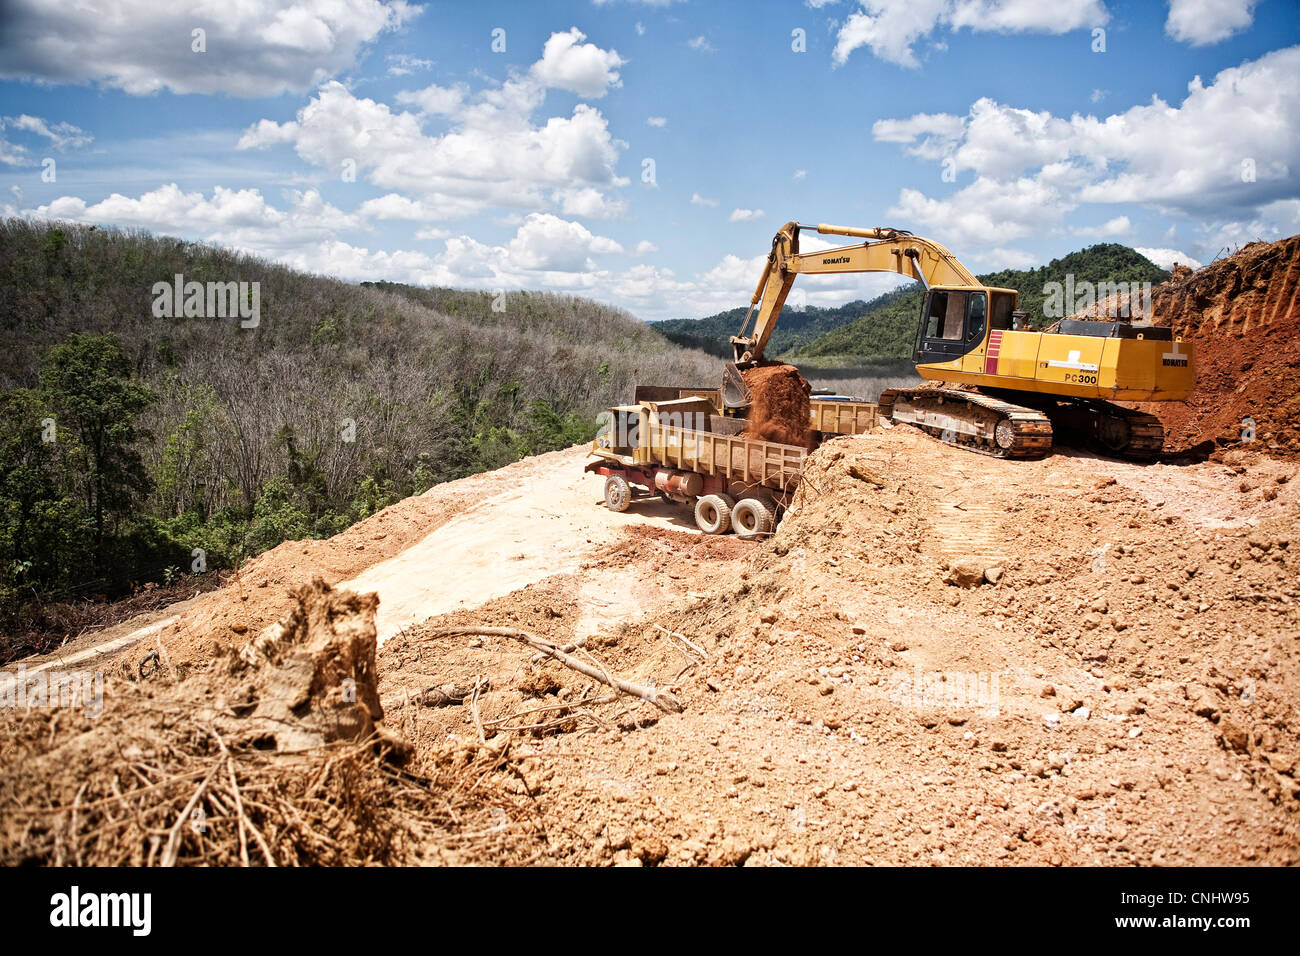 Part of the construction work for the highway to the Thai border near Gubir in Malaysia, February, 2009 - Stock Image